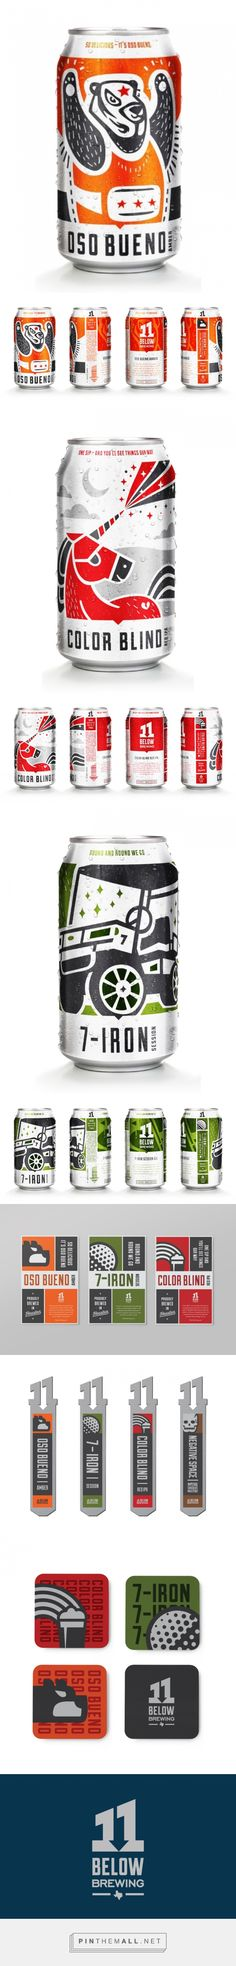 11 Below Brewing | Oh Beautiful Beer... - a grouped images picture - Pin Them All